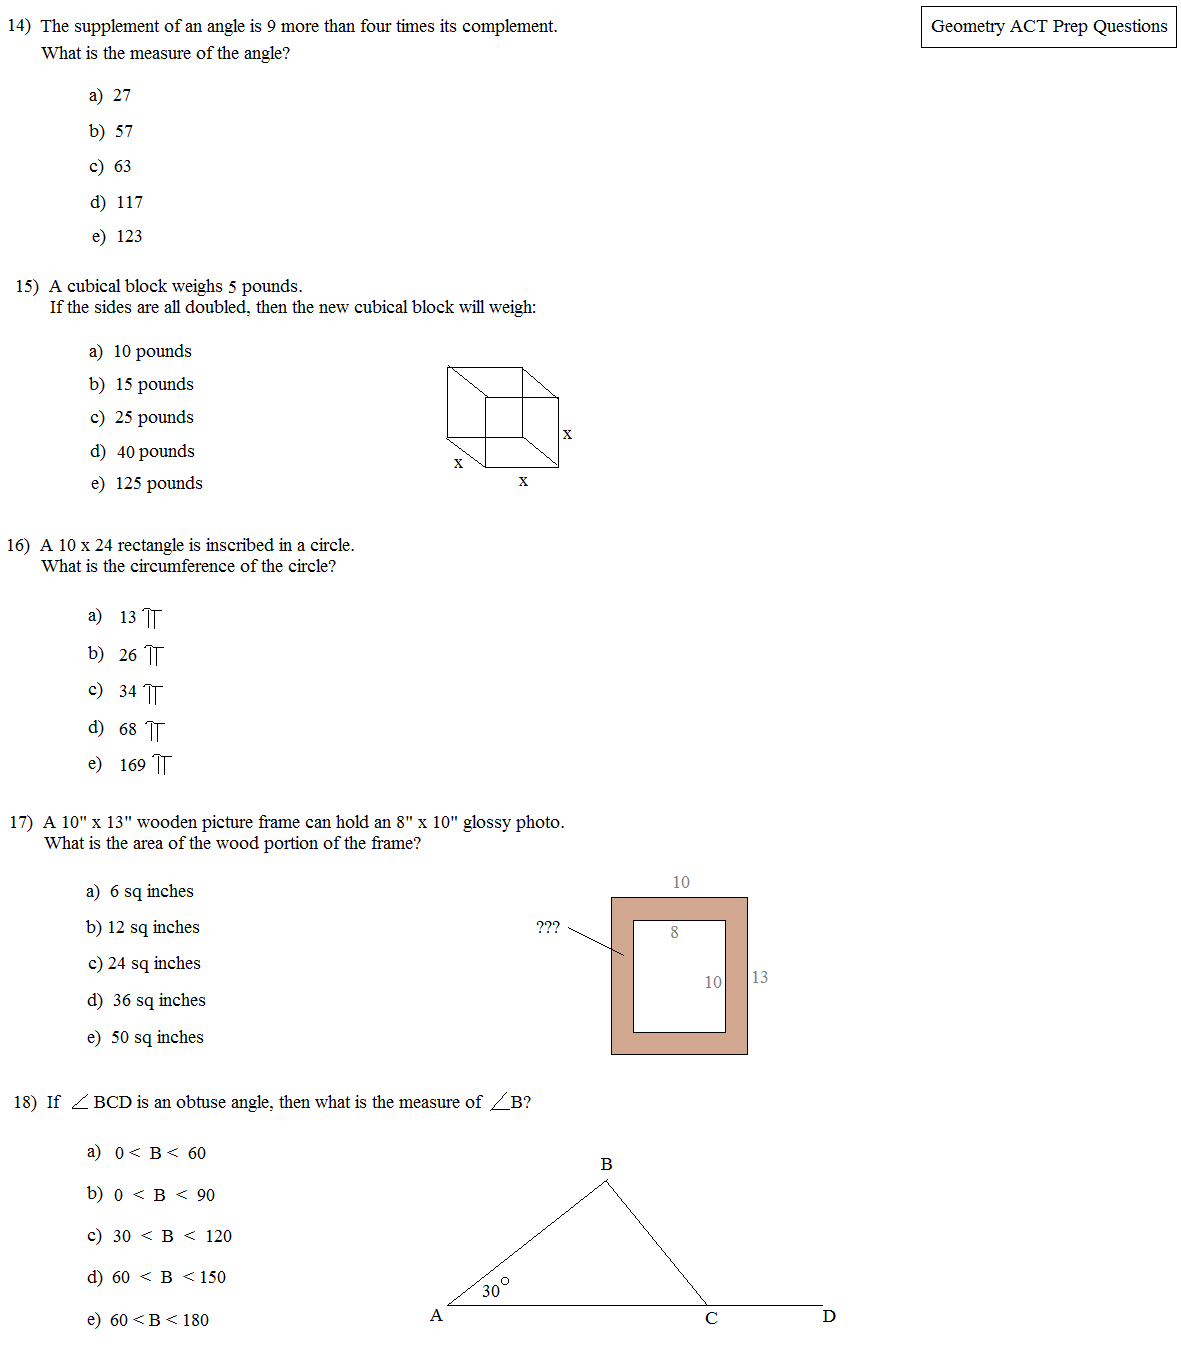 Math Plane - ACT Geometry Practice Questions